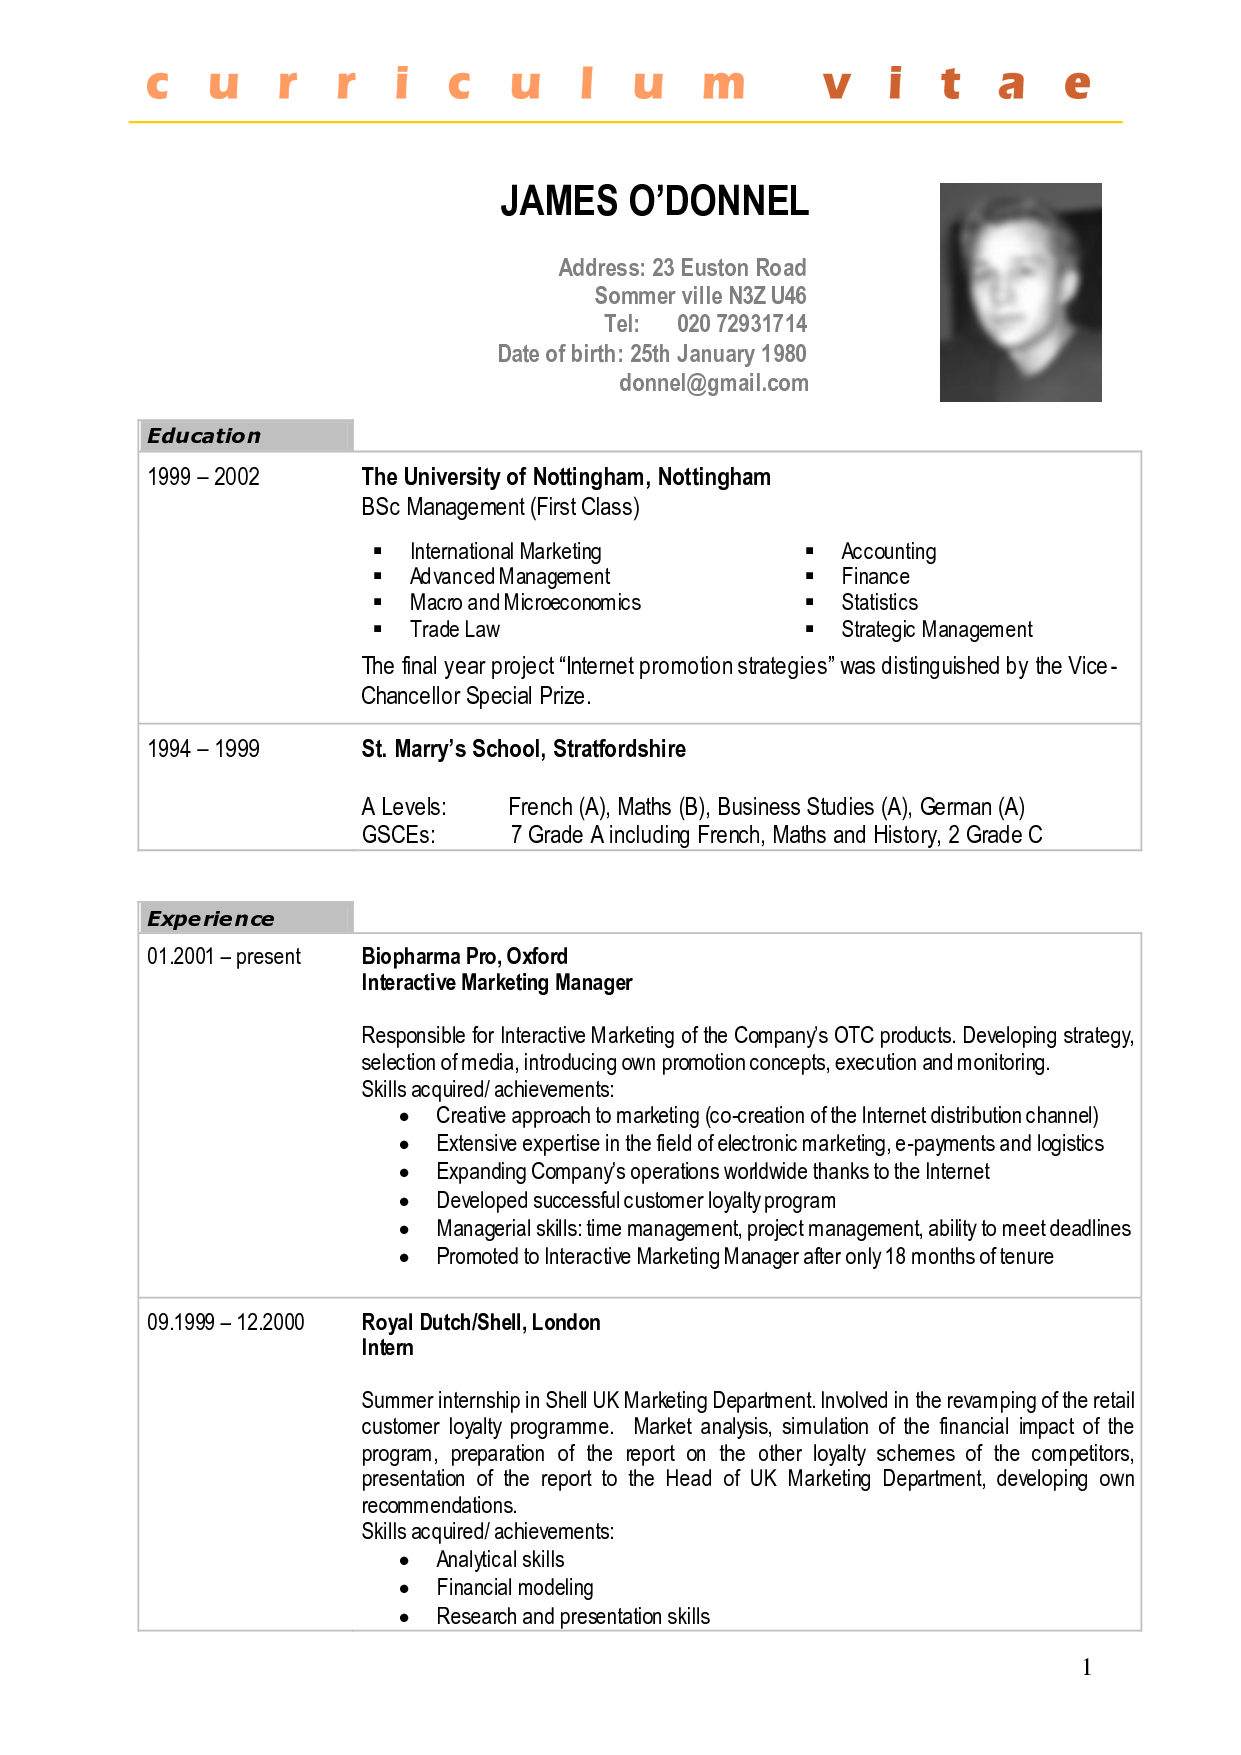 sample cv fotolip com rich image and wallpaper - Sample Picture Of A Resume